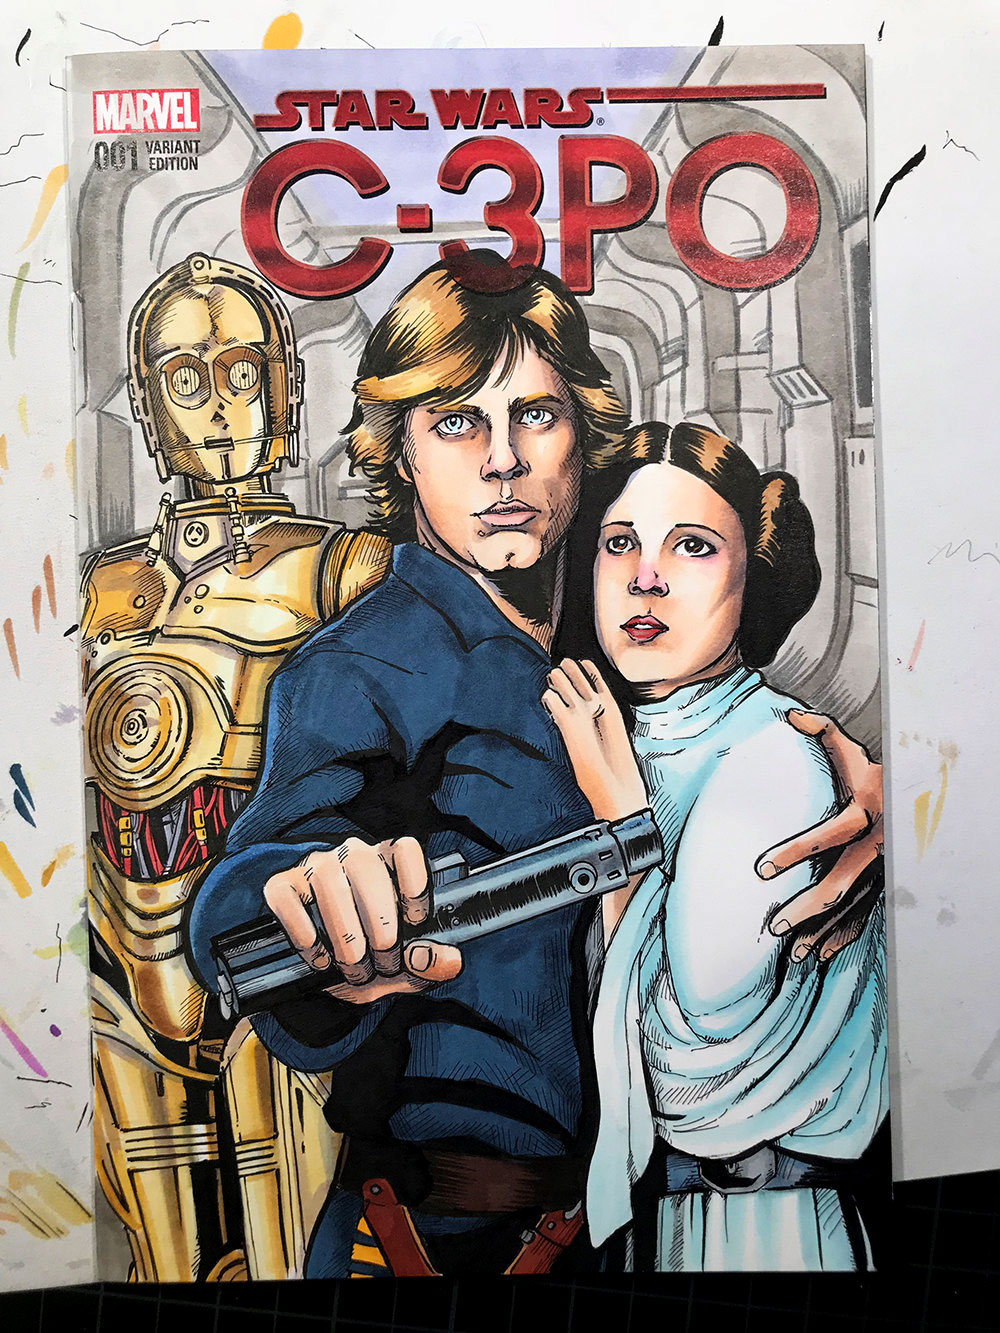 Star Wars C-3PO comic cover for Marvel